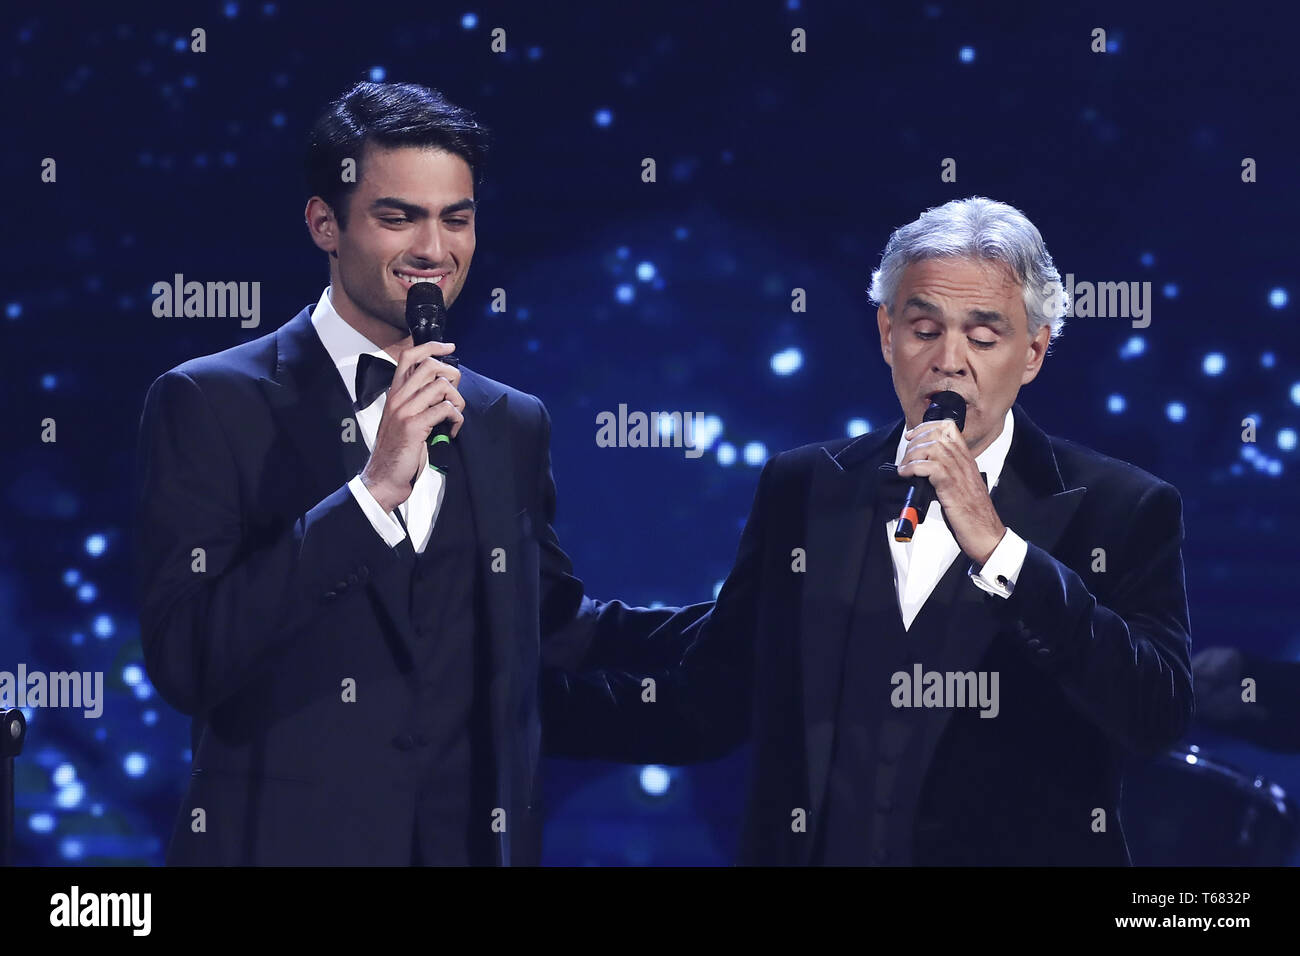 64th David di Donatello Awards - Show  Featuring: Andrea Bocelli, Matteo Bocelli Where: Rome, Italy When: 27 Mar 2019 Credit: IPA/WENN.com  **Only available for publication in UK, USA, Germany, Austria, Switzerland** - Stock Image